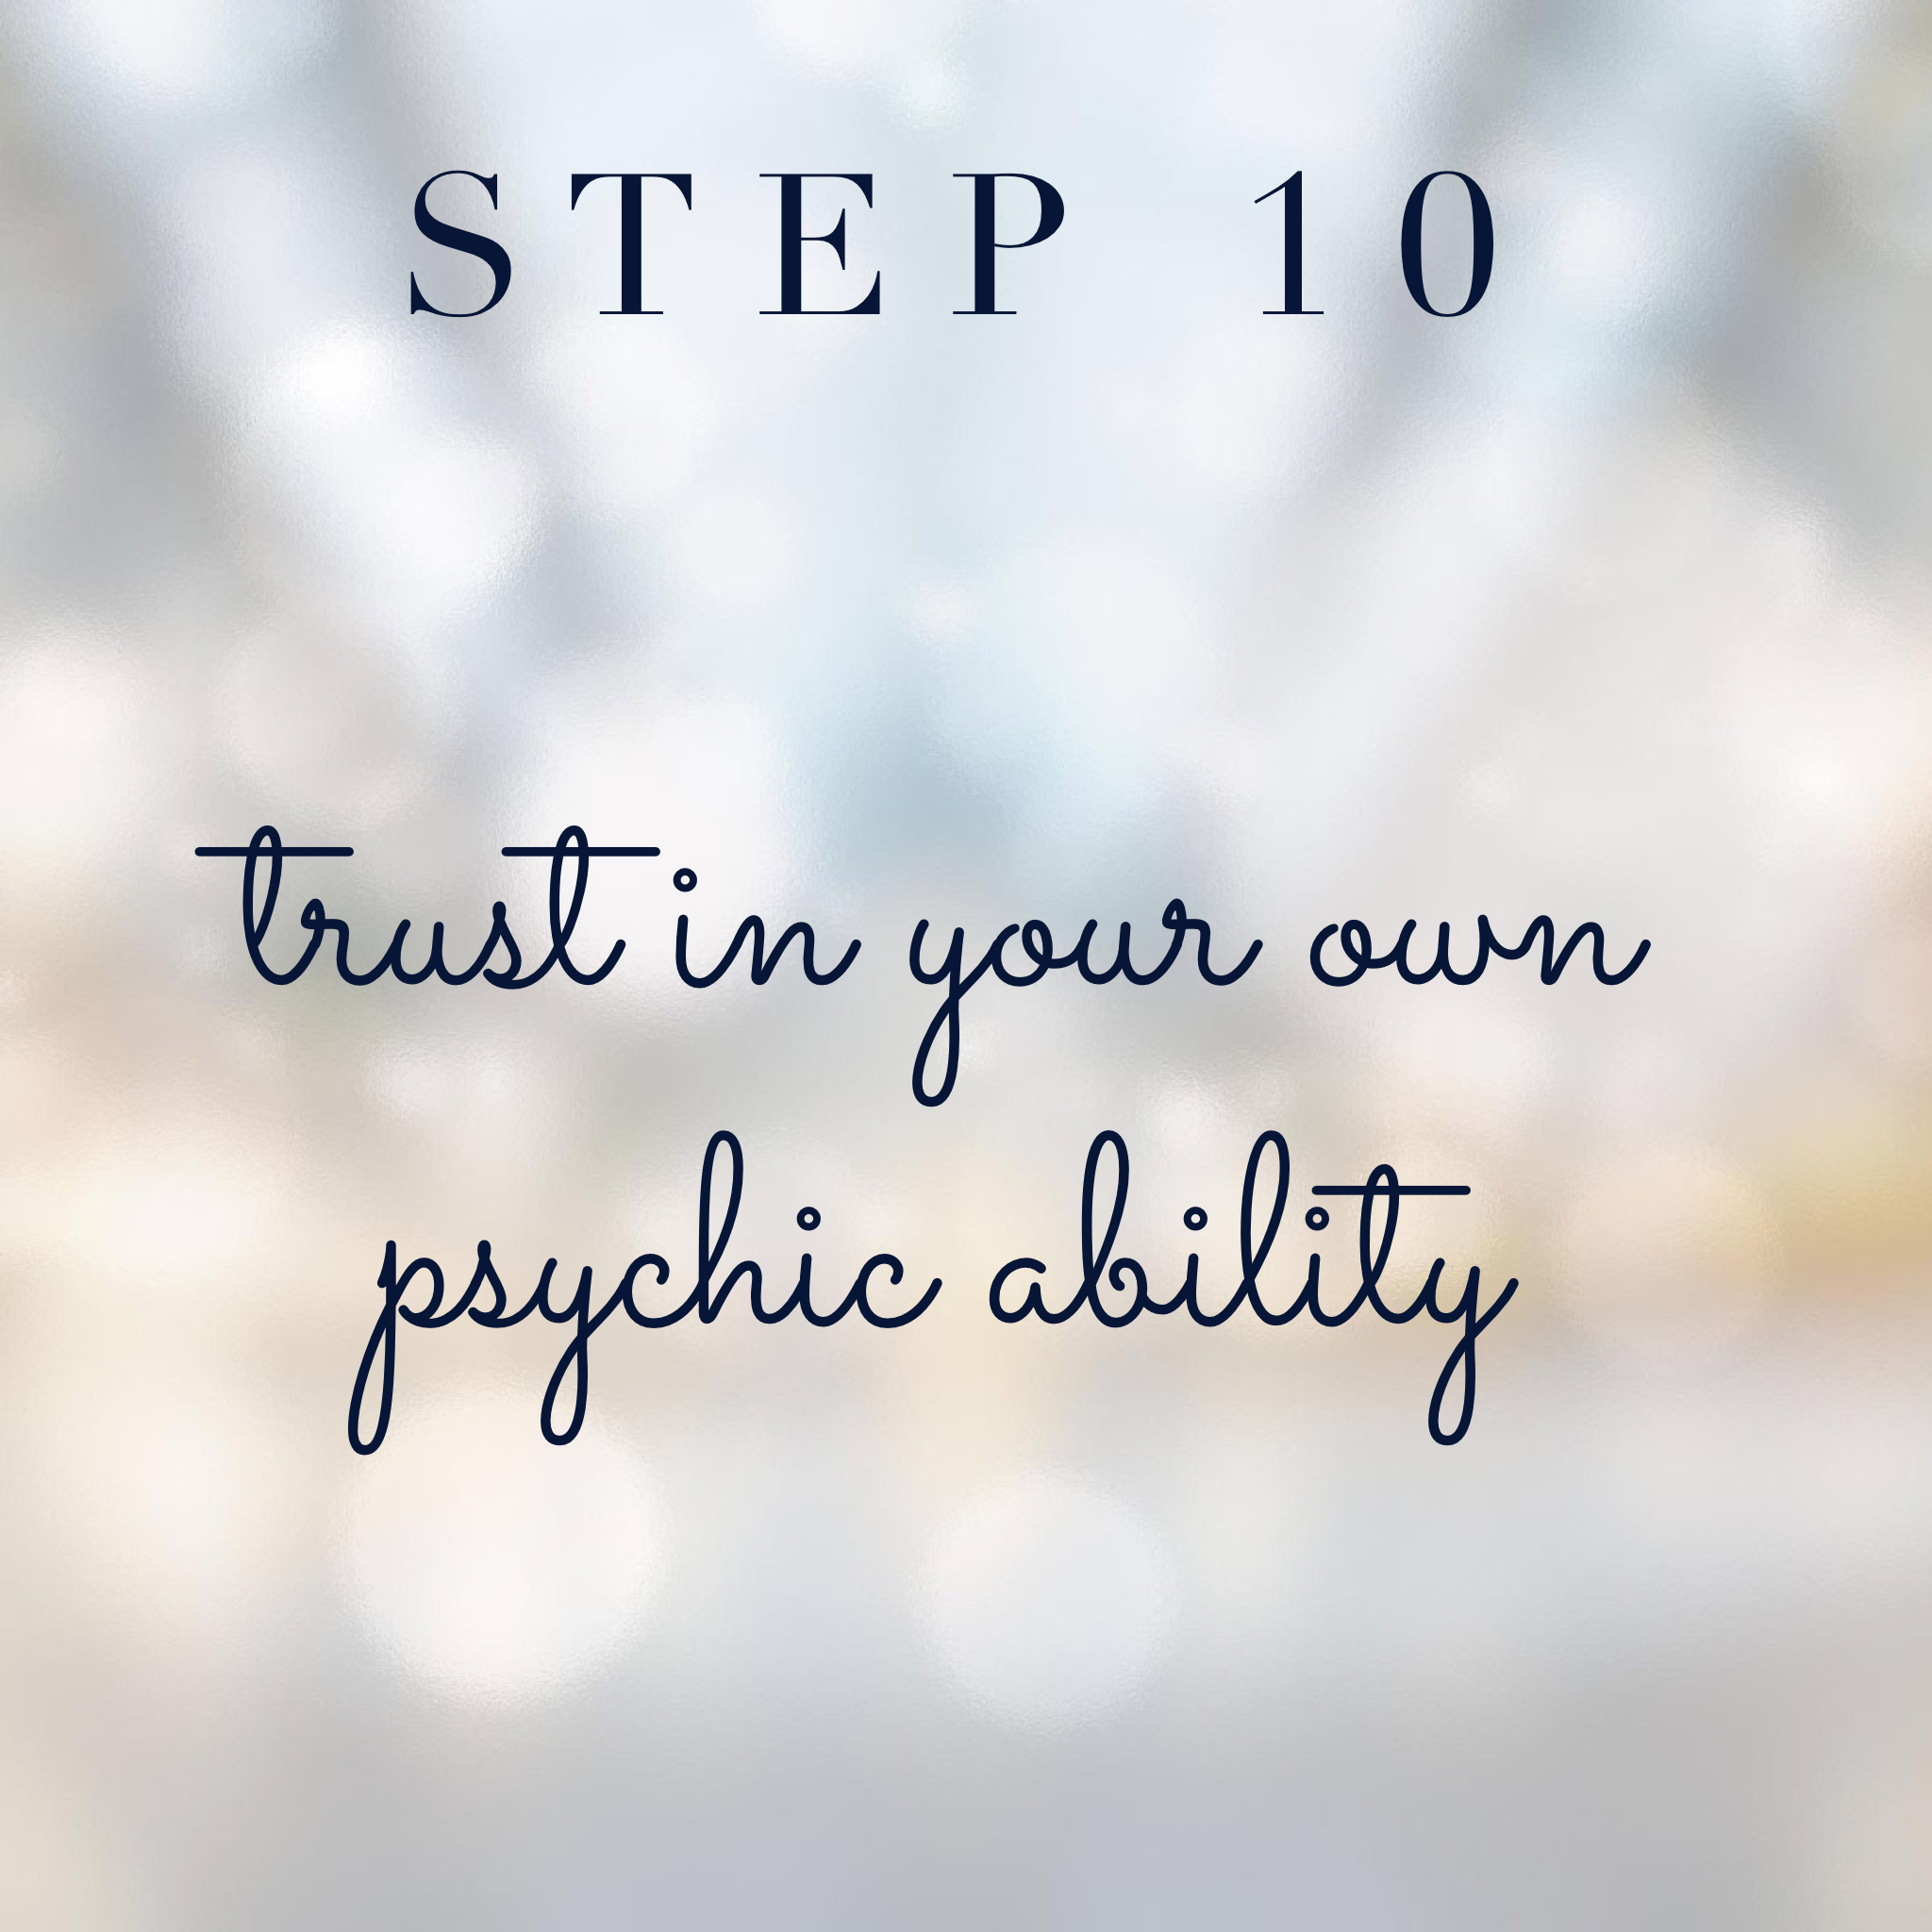 Connect with your spirit guides step 10: Trust in your own psychic ability